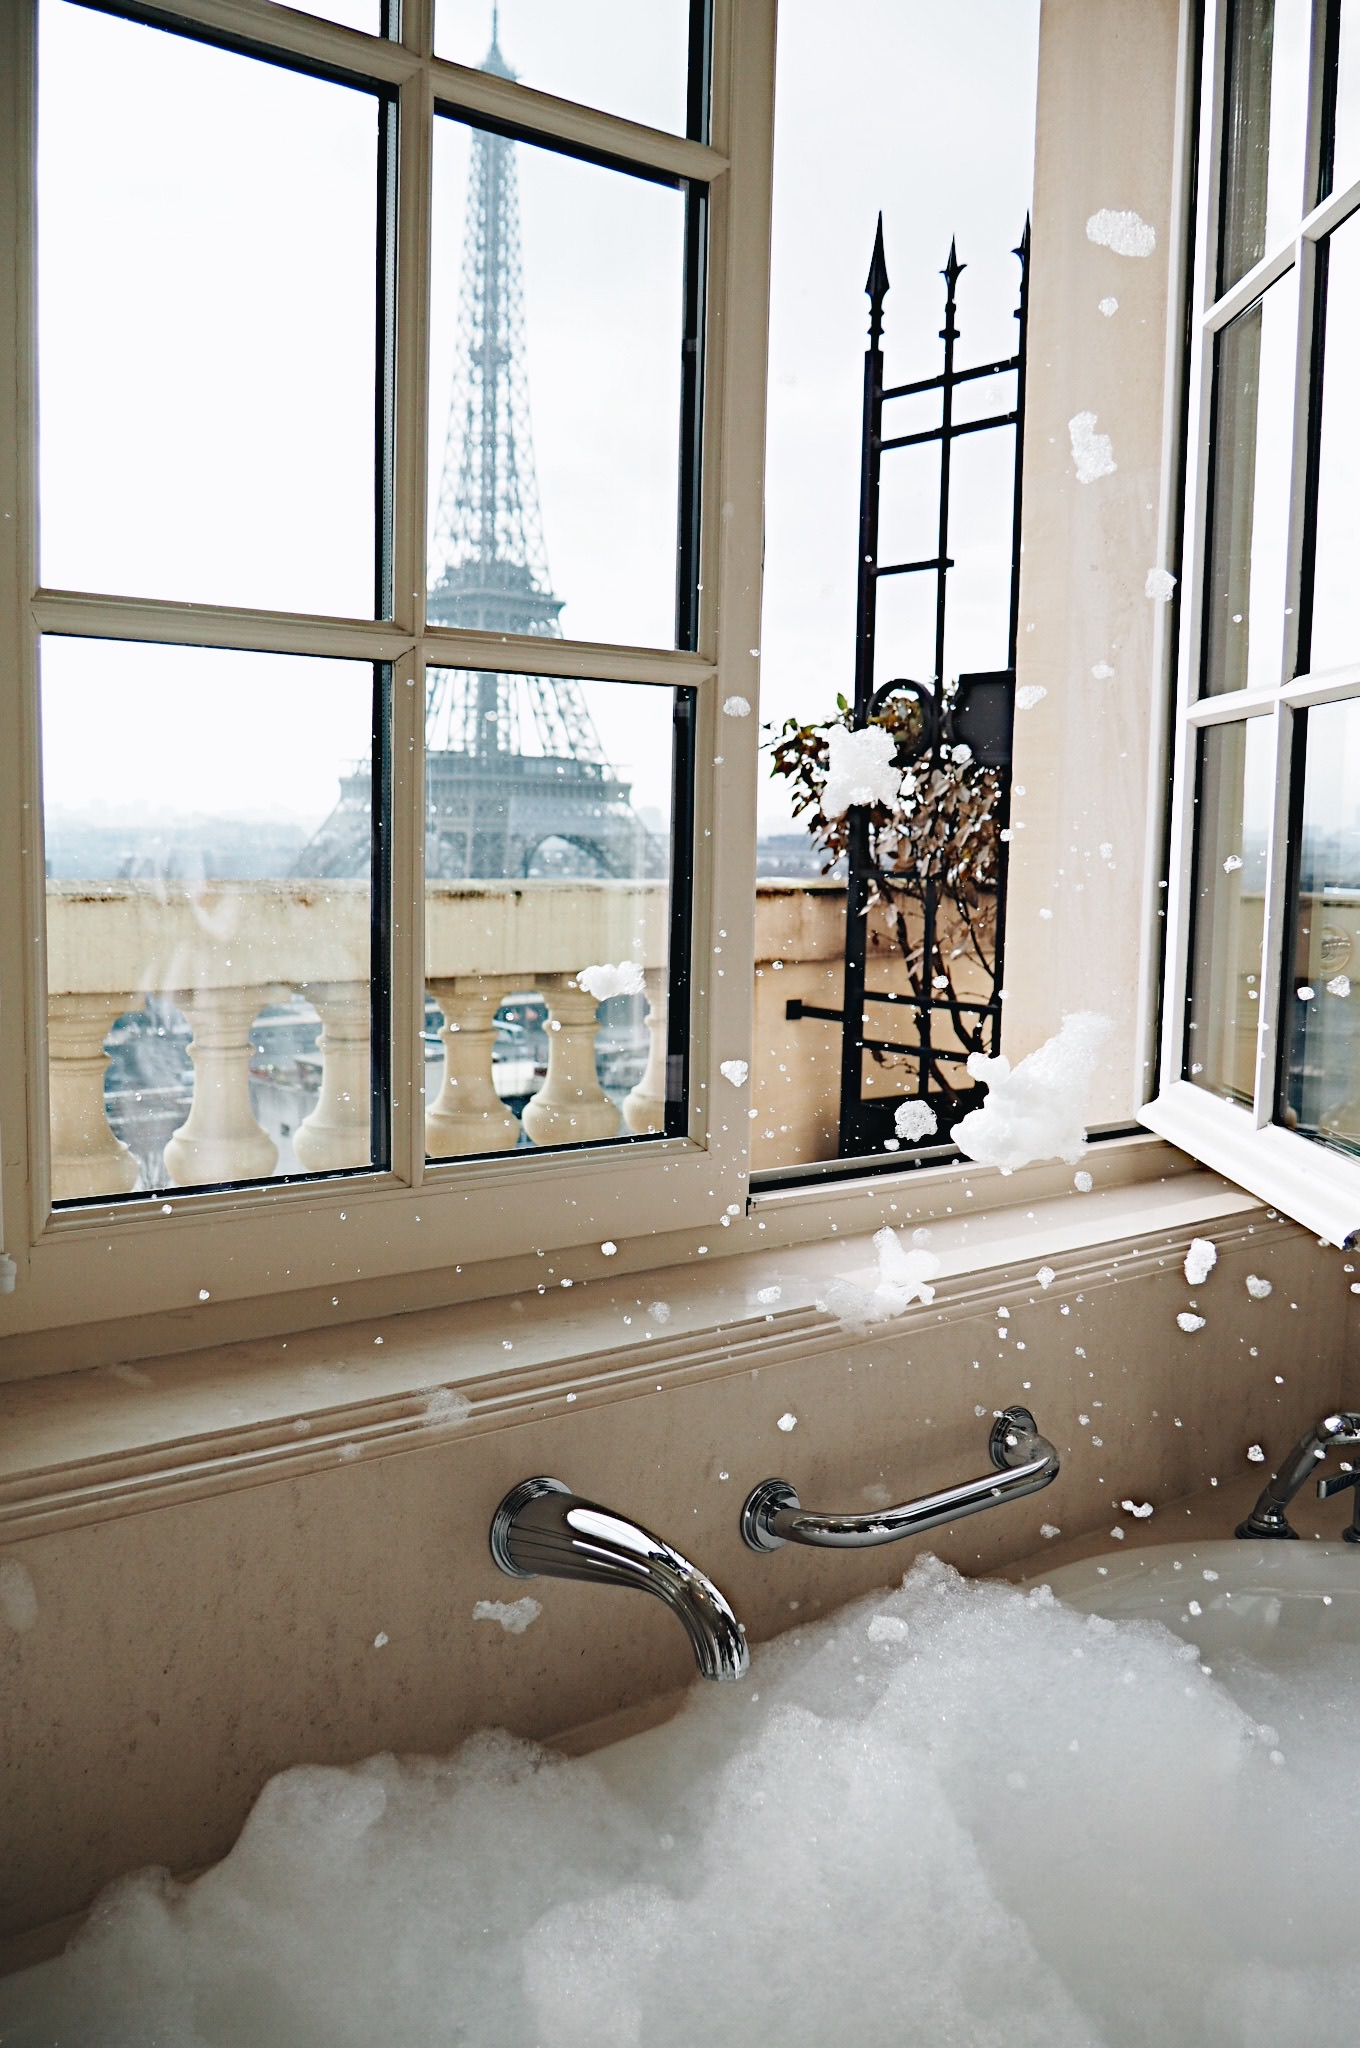 Sunday at the Shangri-la Paris - A dreamy at one of Paris' most luxurious hotels